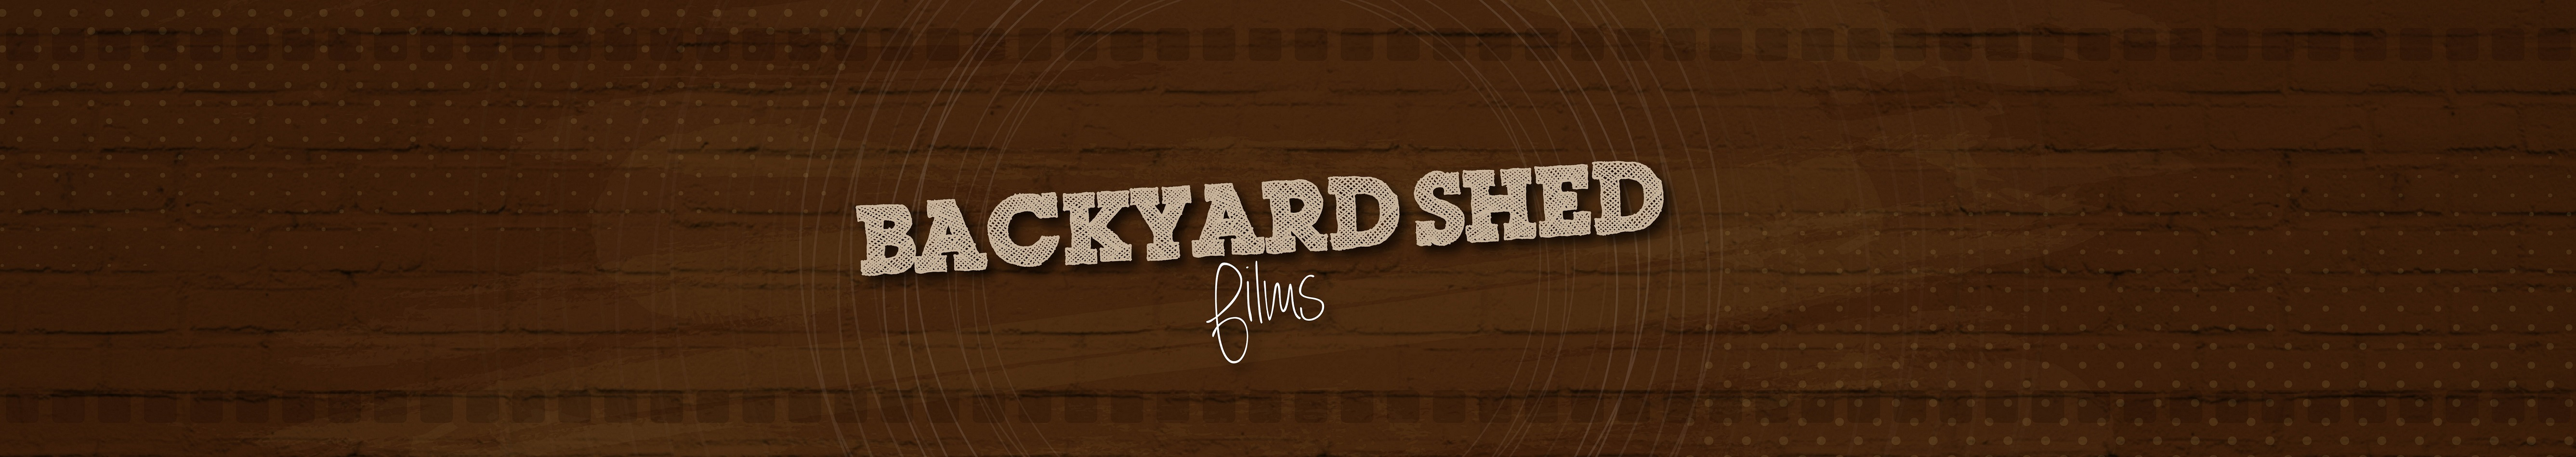 Mystic Pony Aerial Troupe and Shovels & Rope live performance | Backyard Shed Films